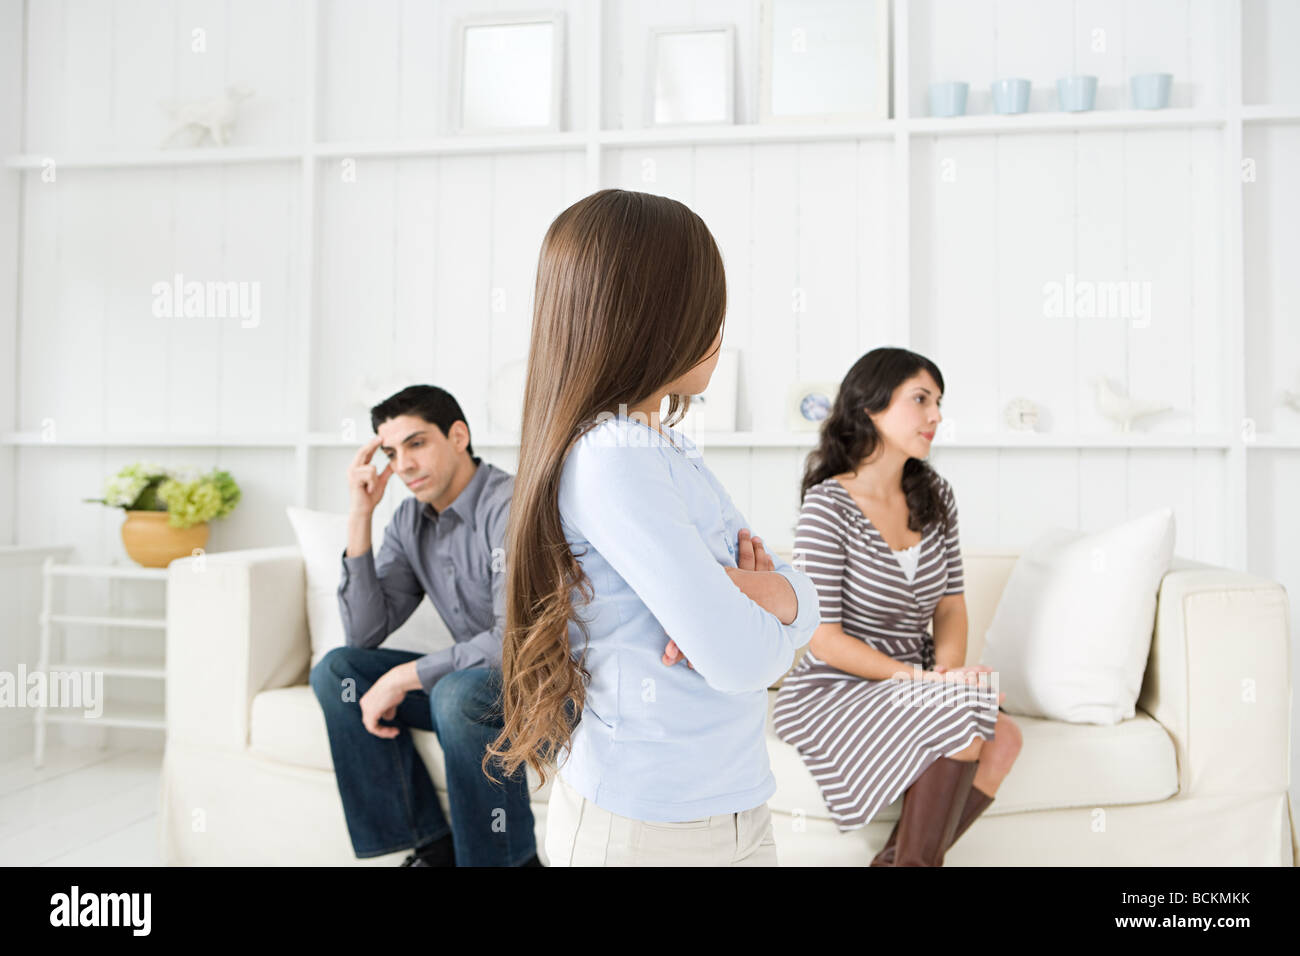 Girl looking at her hostile parents - Stock Image